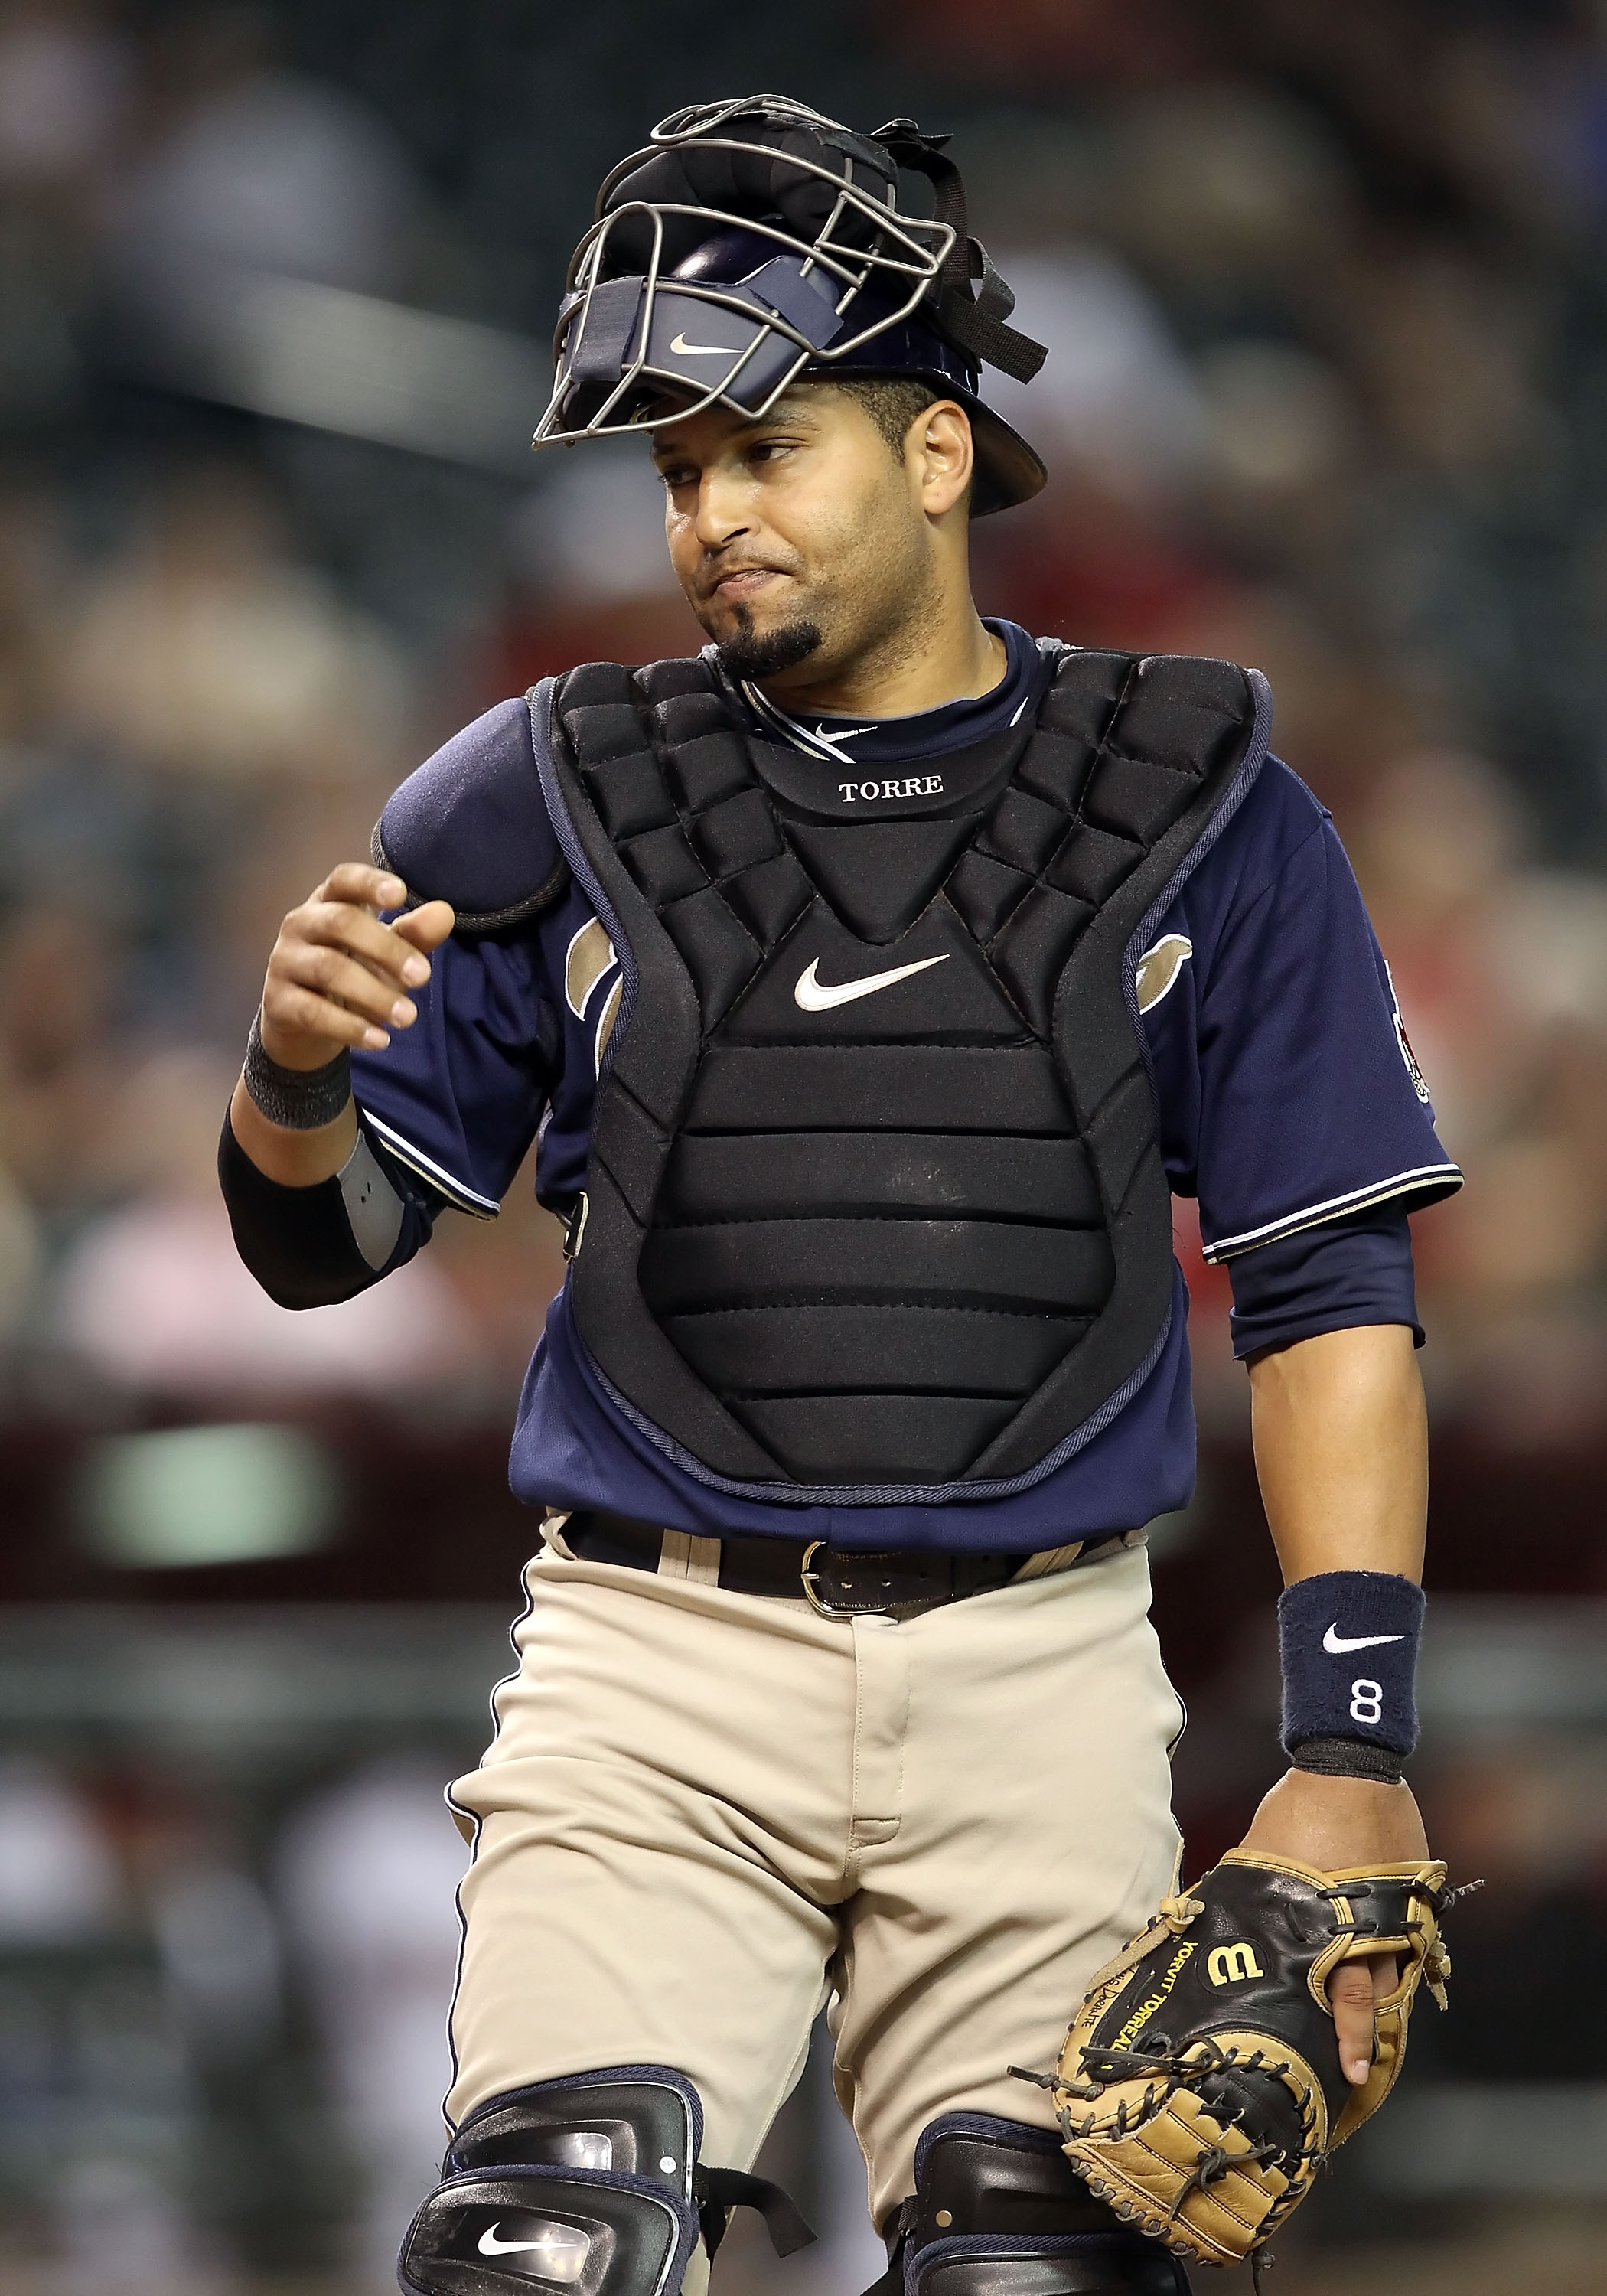 PHOENIX - AUGUST 30:  Catcher Yorvit Torrealba #8 of the San Diego Padres in action during the Major League Baseball game against the Arizona Diamondbacks at Chase Field on August 30, 2010 in Phoenix, Arizona. The Diamondbacks defeated the Padres 7-2.  (P